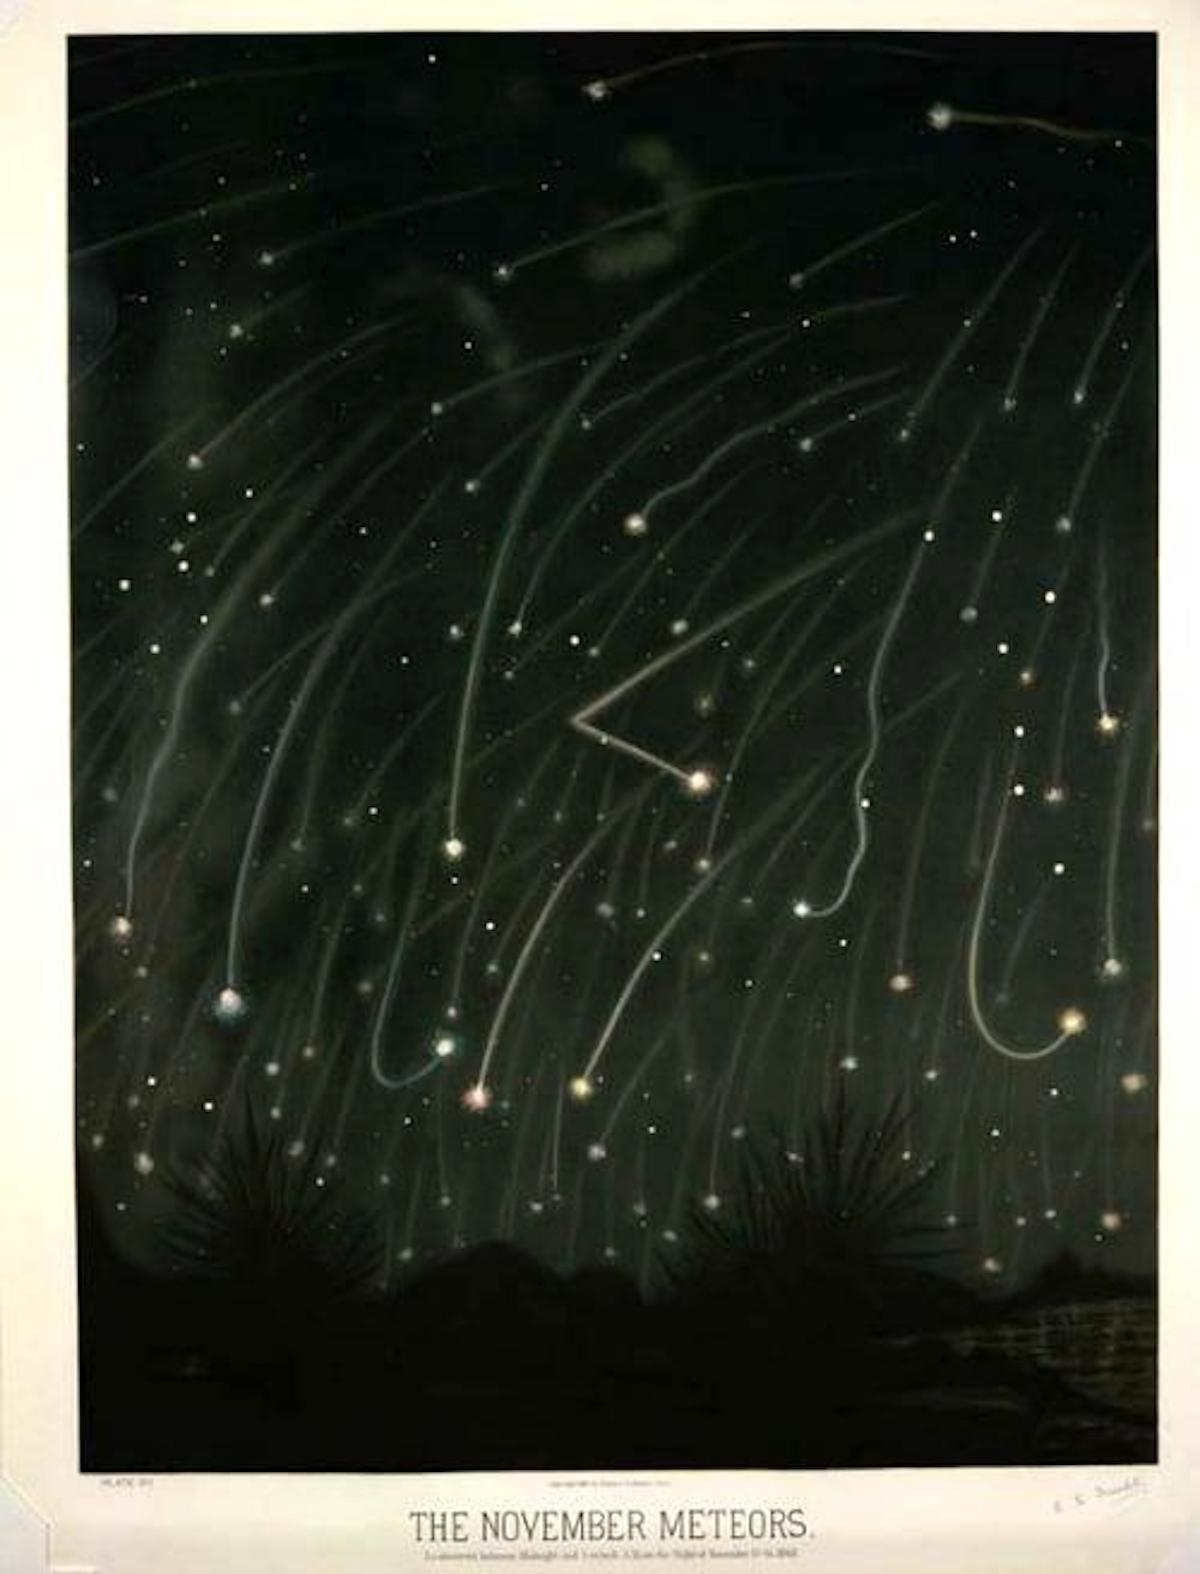 advent 8 The November Meteors by E.L. Trouvelot, 1868